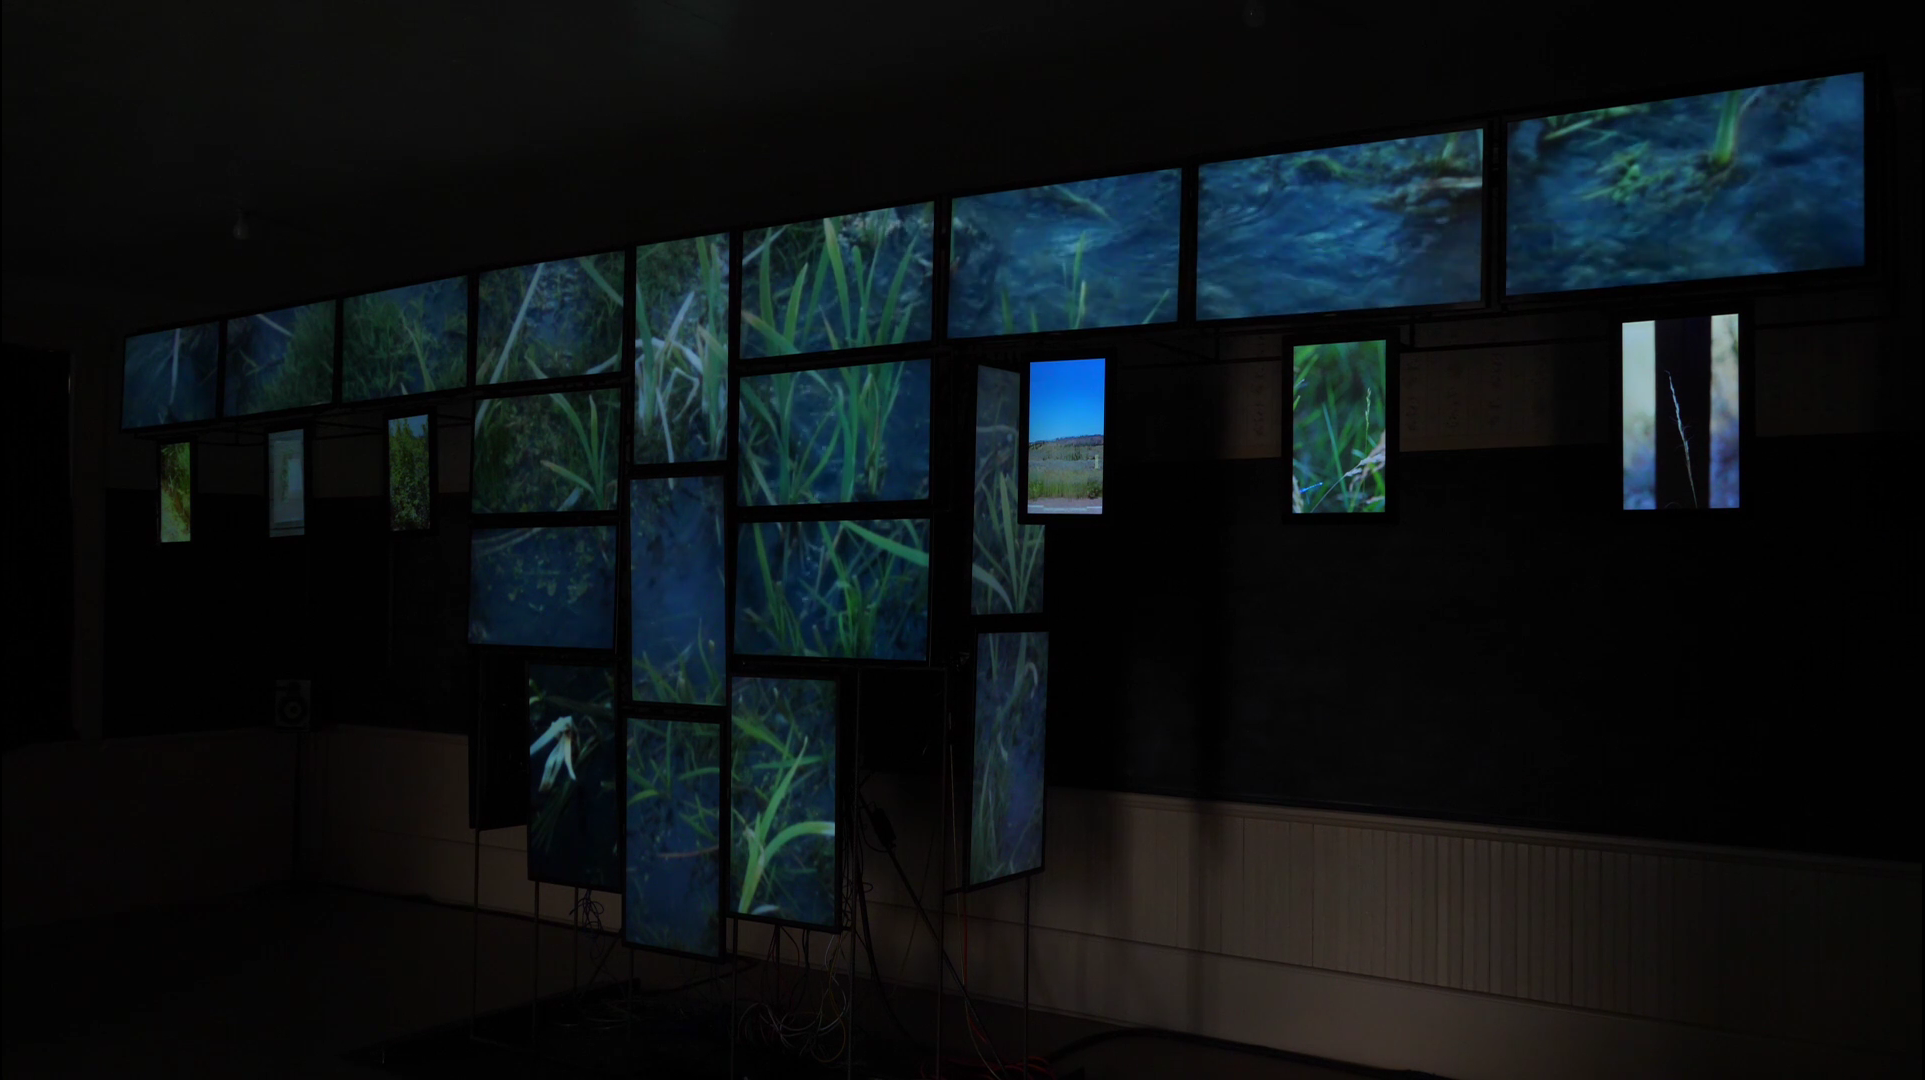 The video installation focused attention on the sight and sounds of place while confronting the colonization of the West.